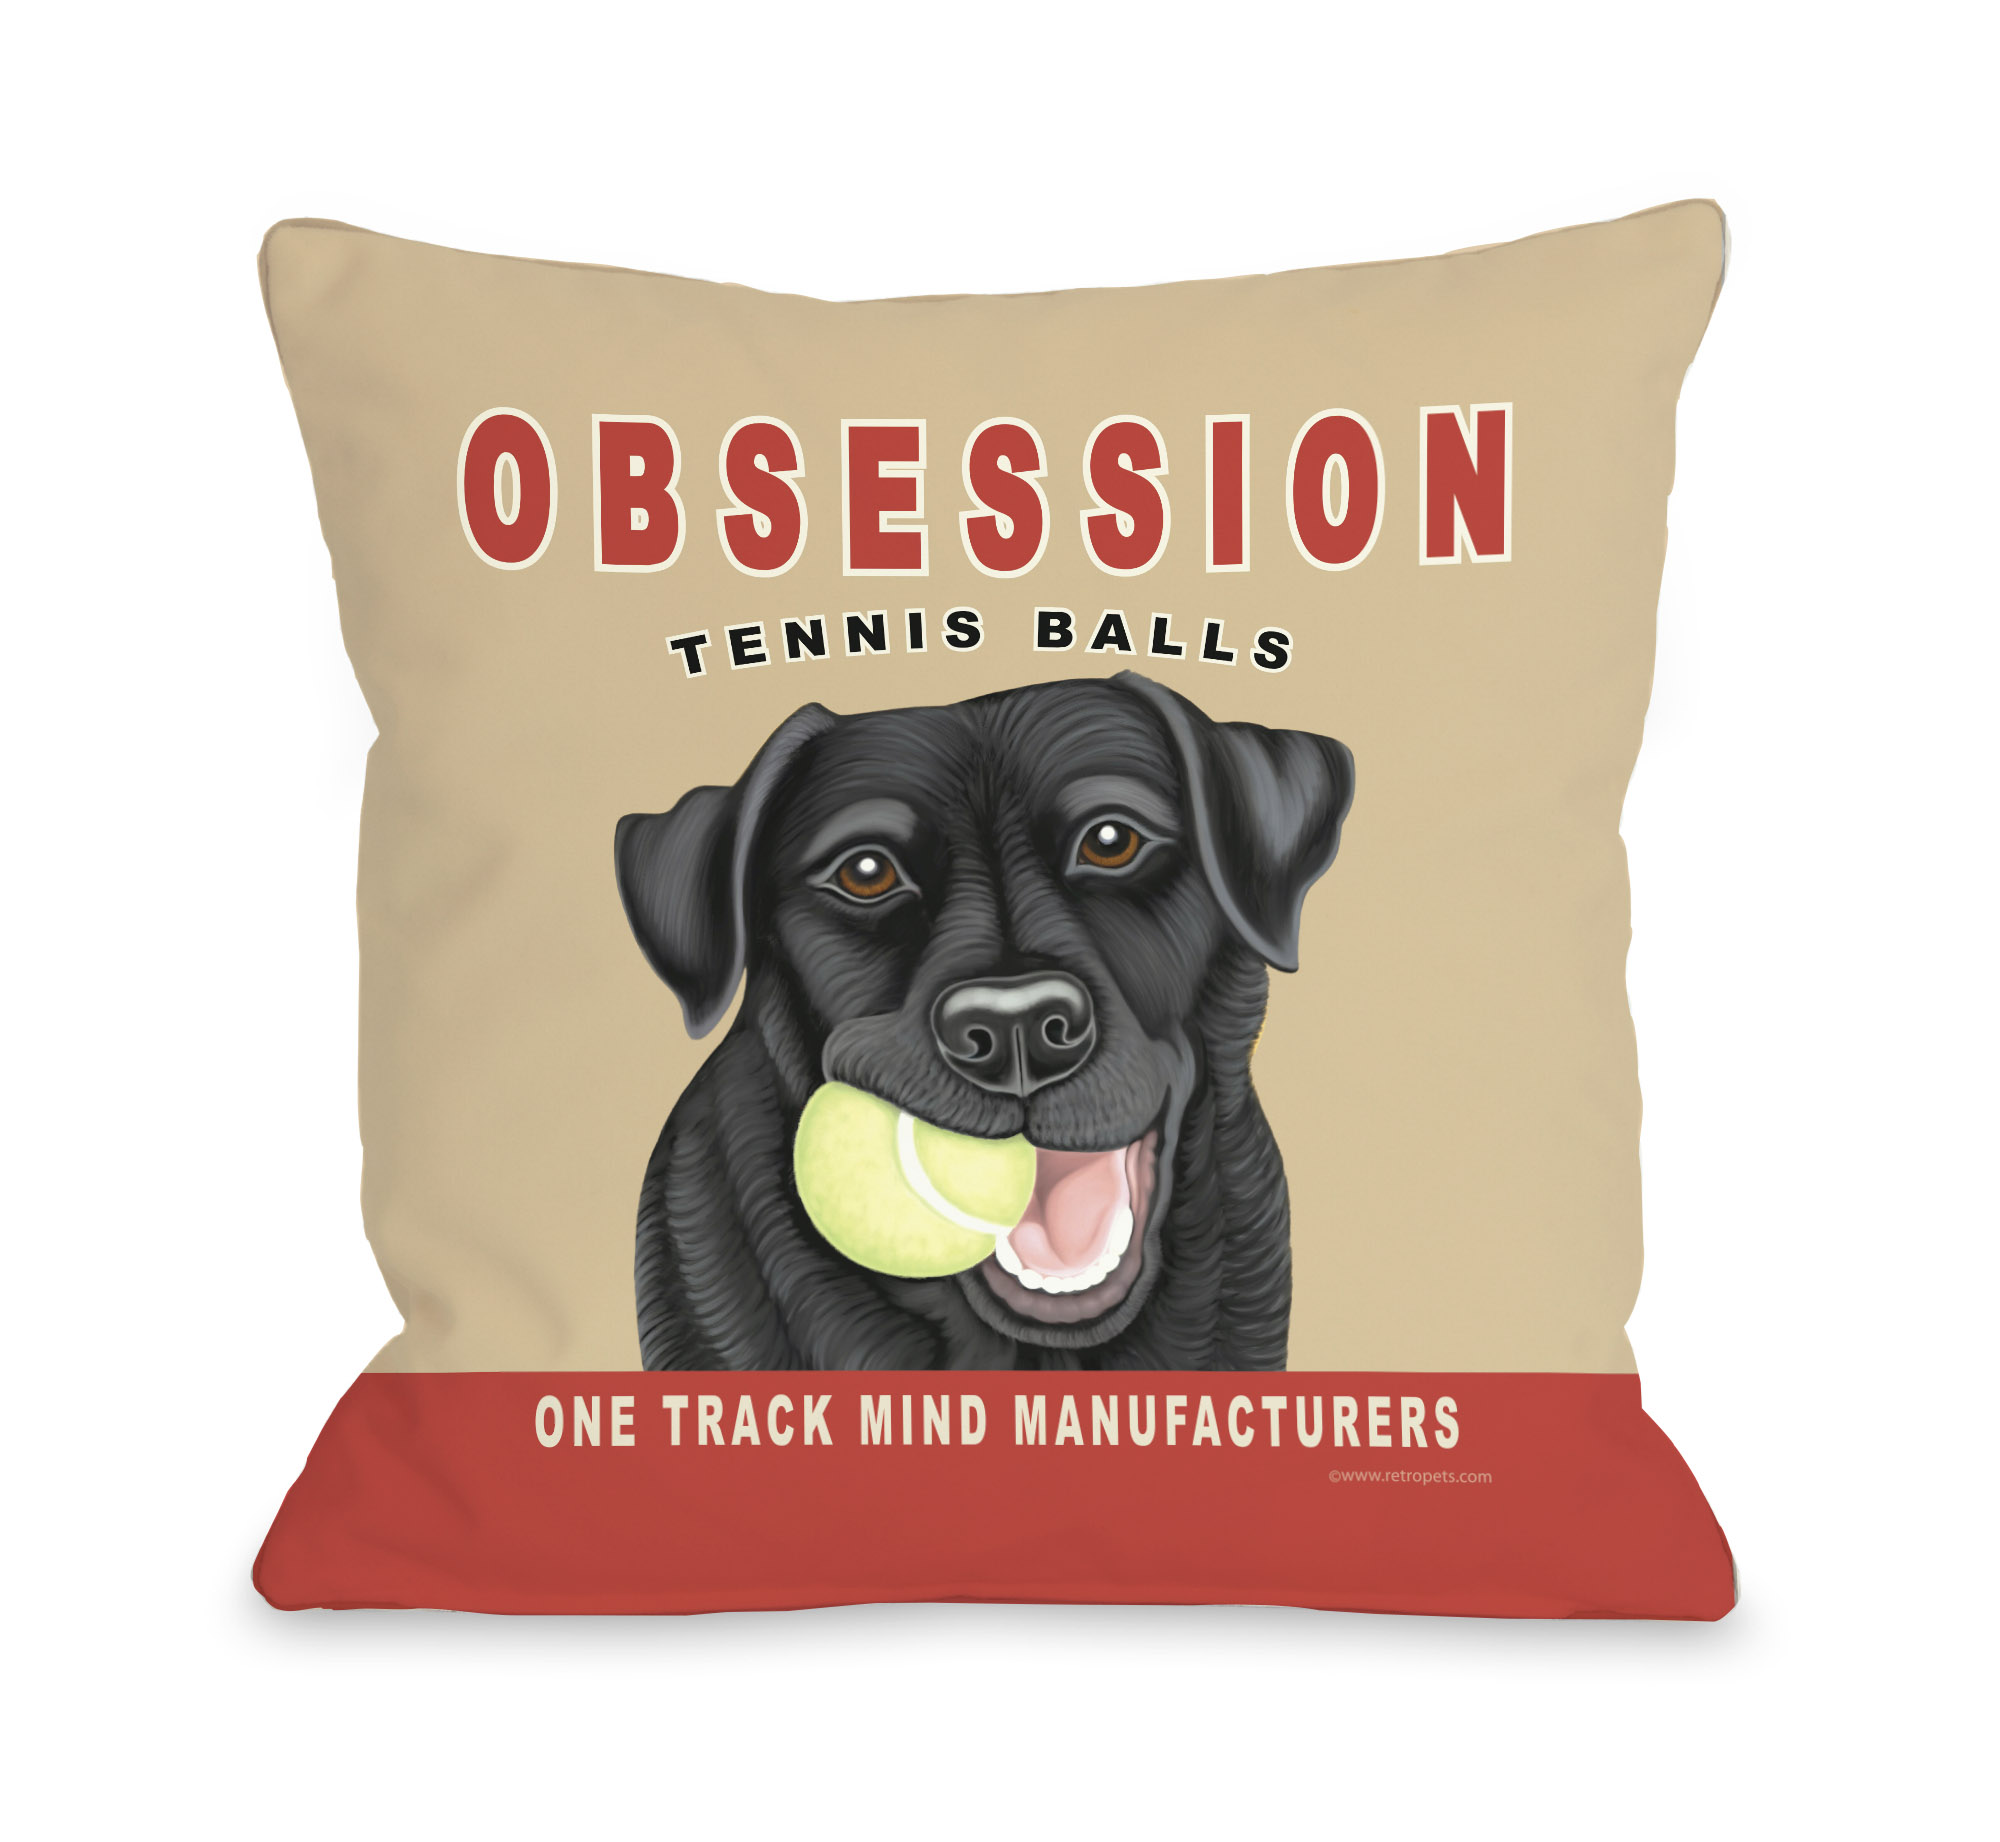 Obsession Tennis Ball 16x16 Pillow by Retro Pets